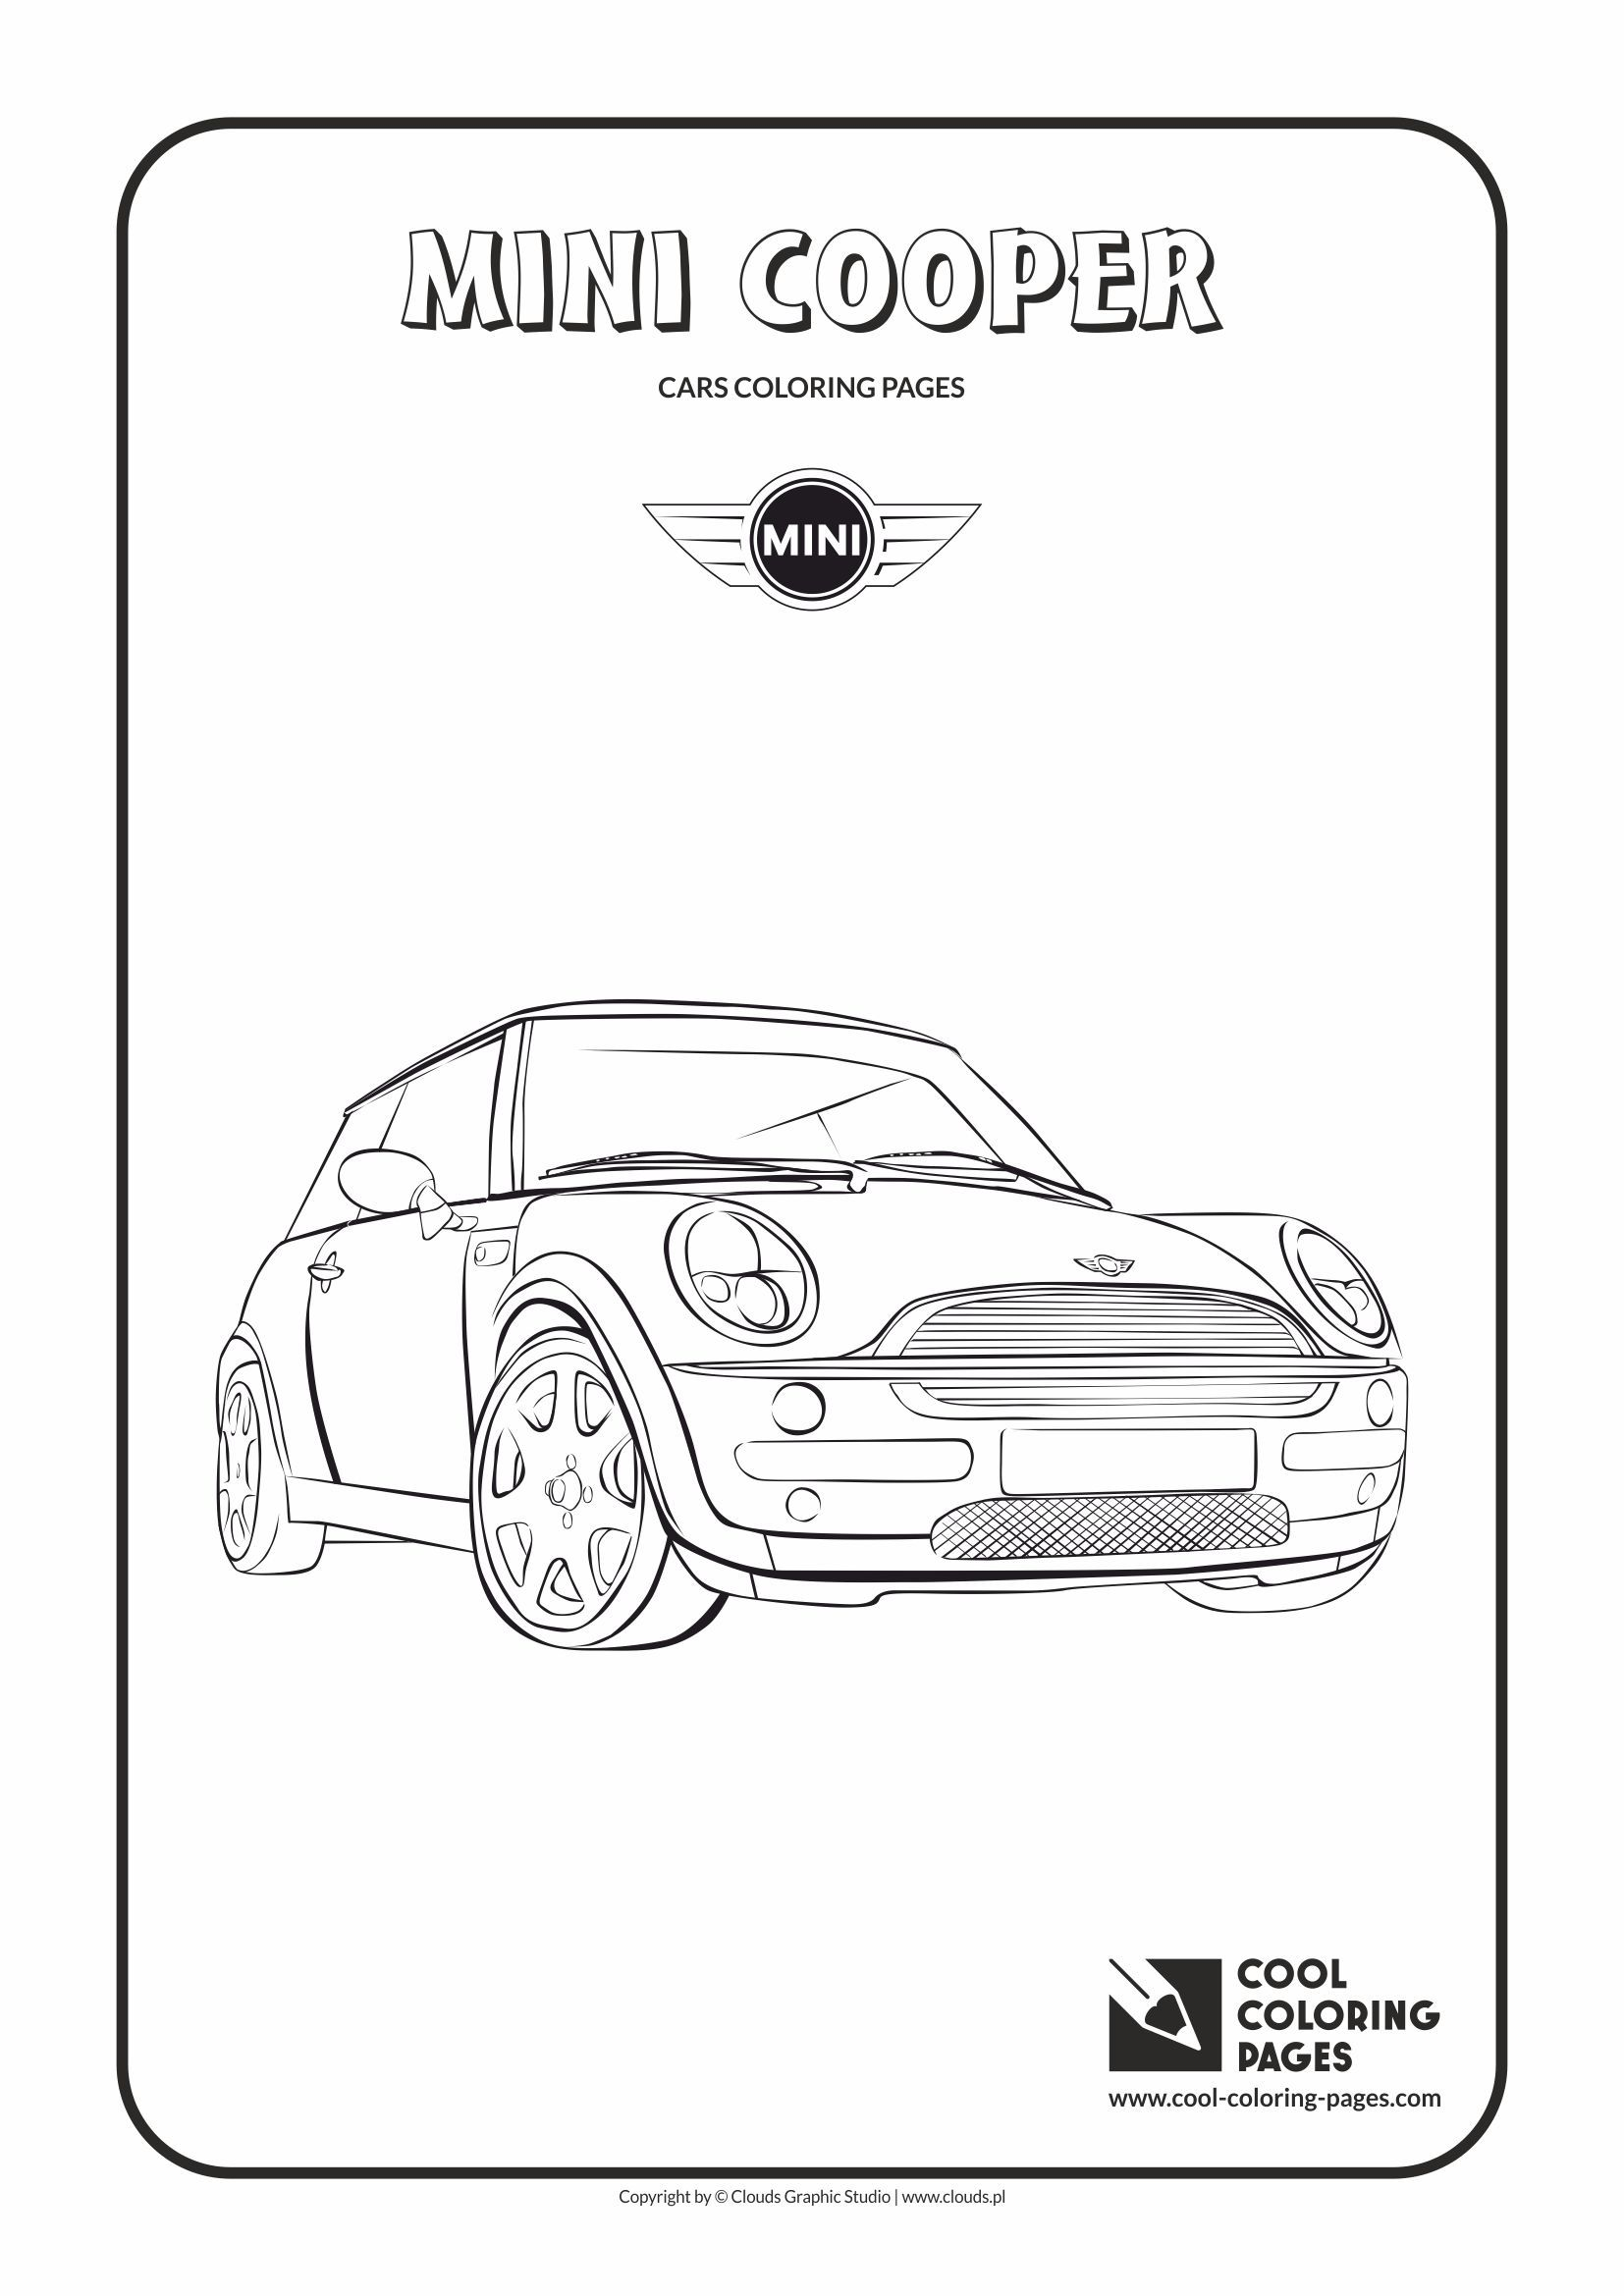 Cool Coloring Pages - Vehicles / Mini Cooper / Coloring page with ...